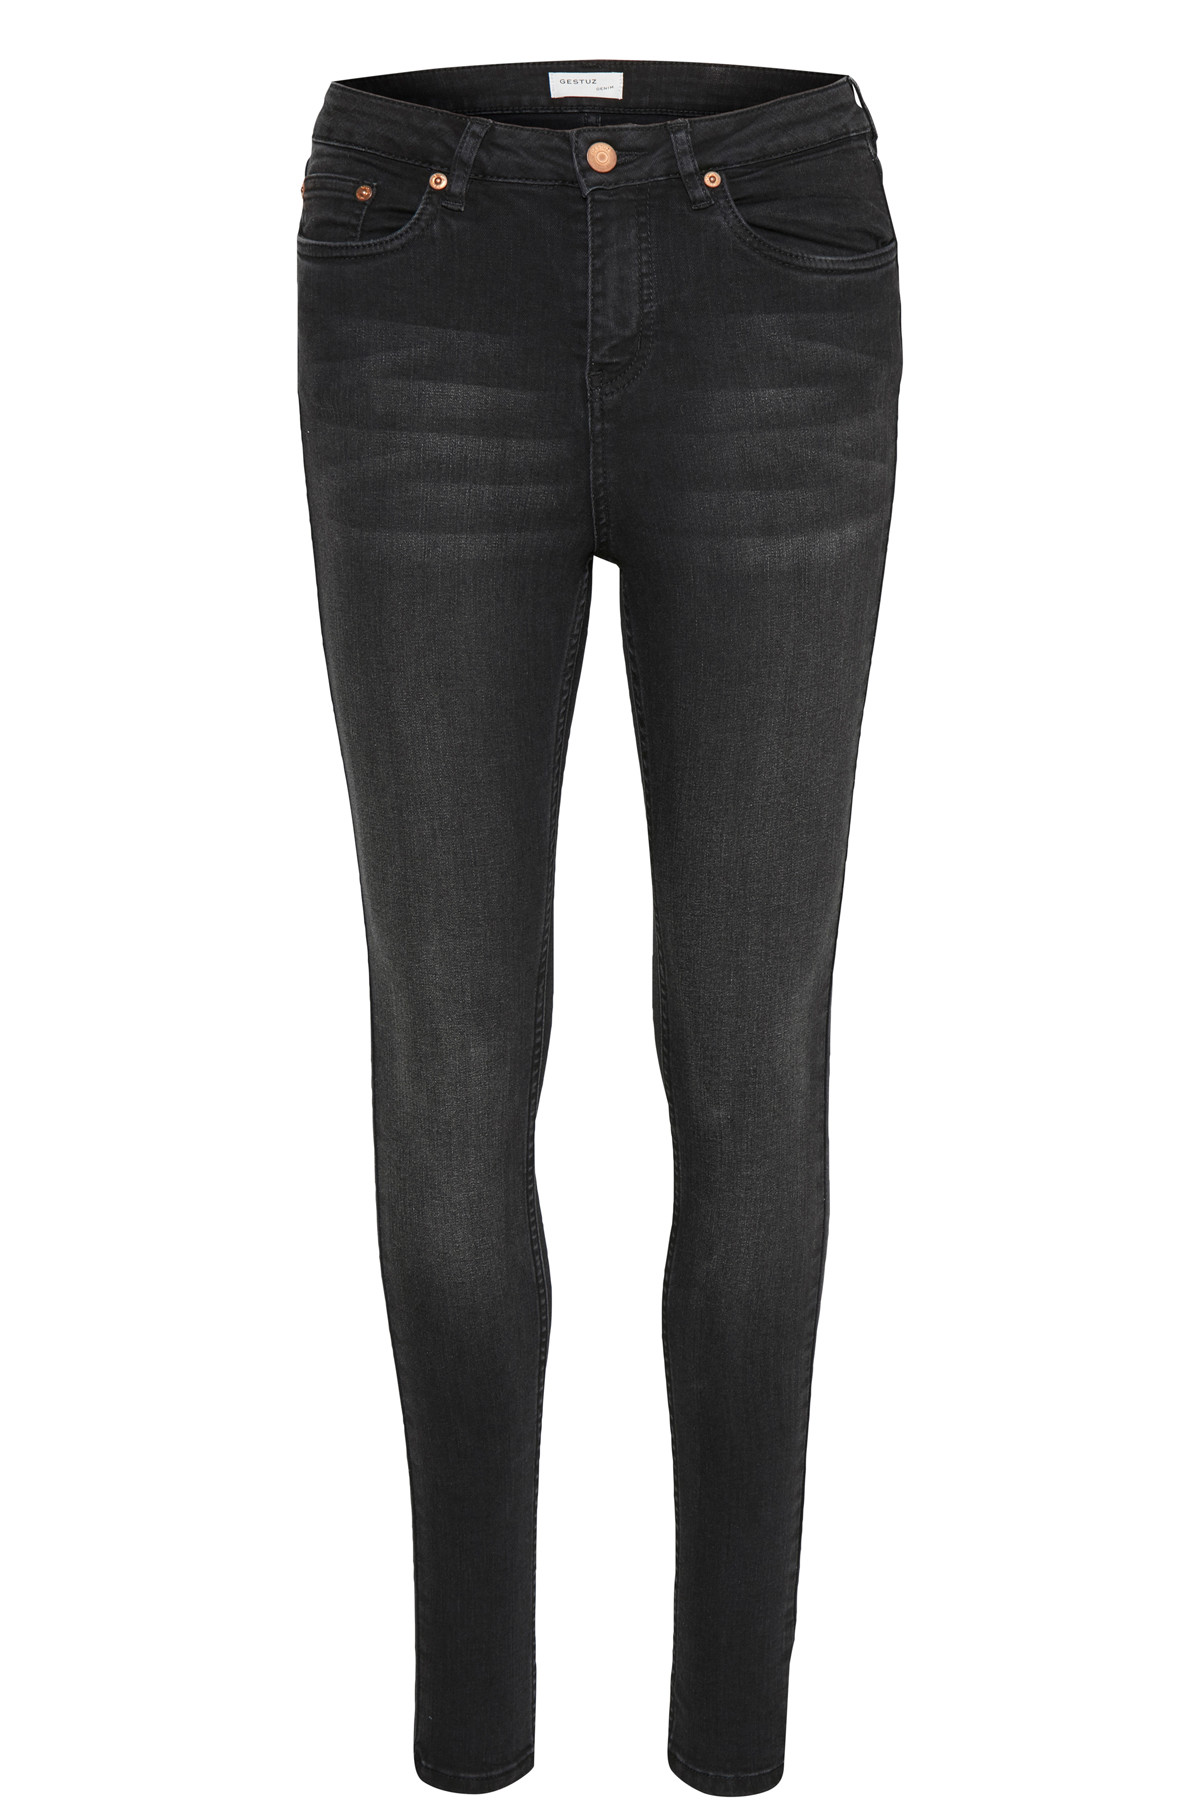 "Image of   GESTUZ EMILY JEANS 10900068 (Charcoal Grey 90899, ""32"", 25)"